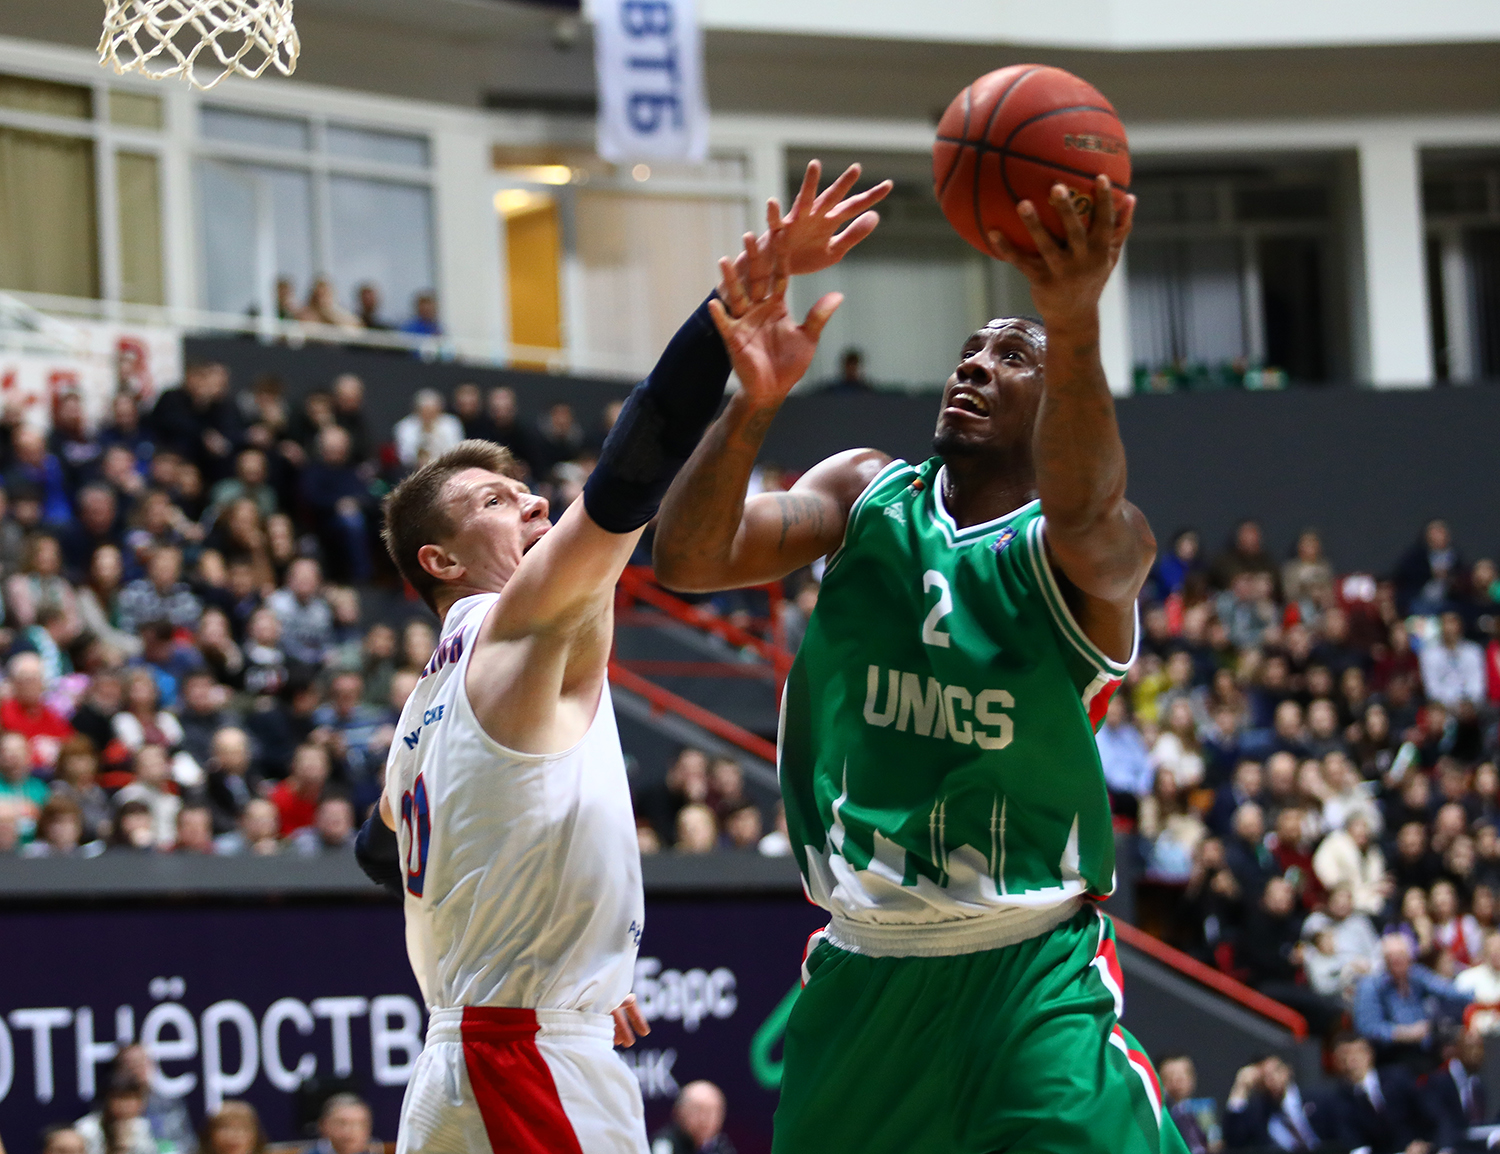 UNICS Breaks CSKA Curse